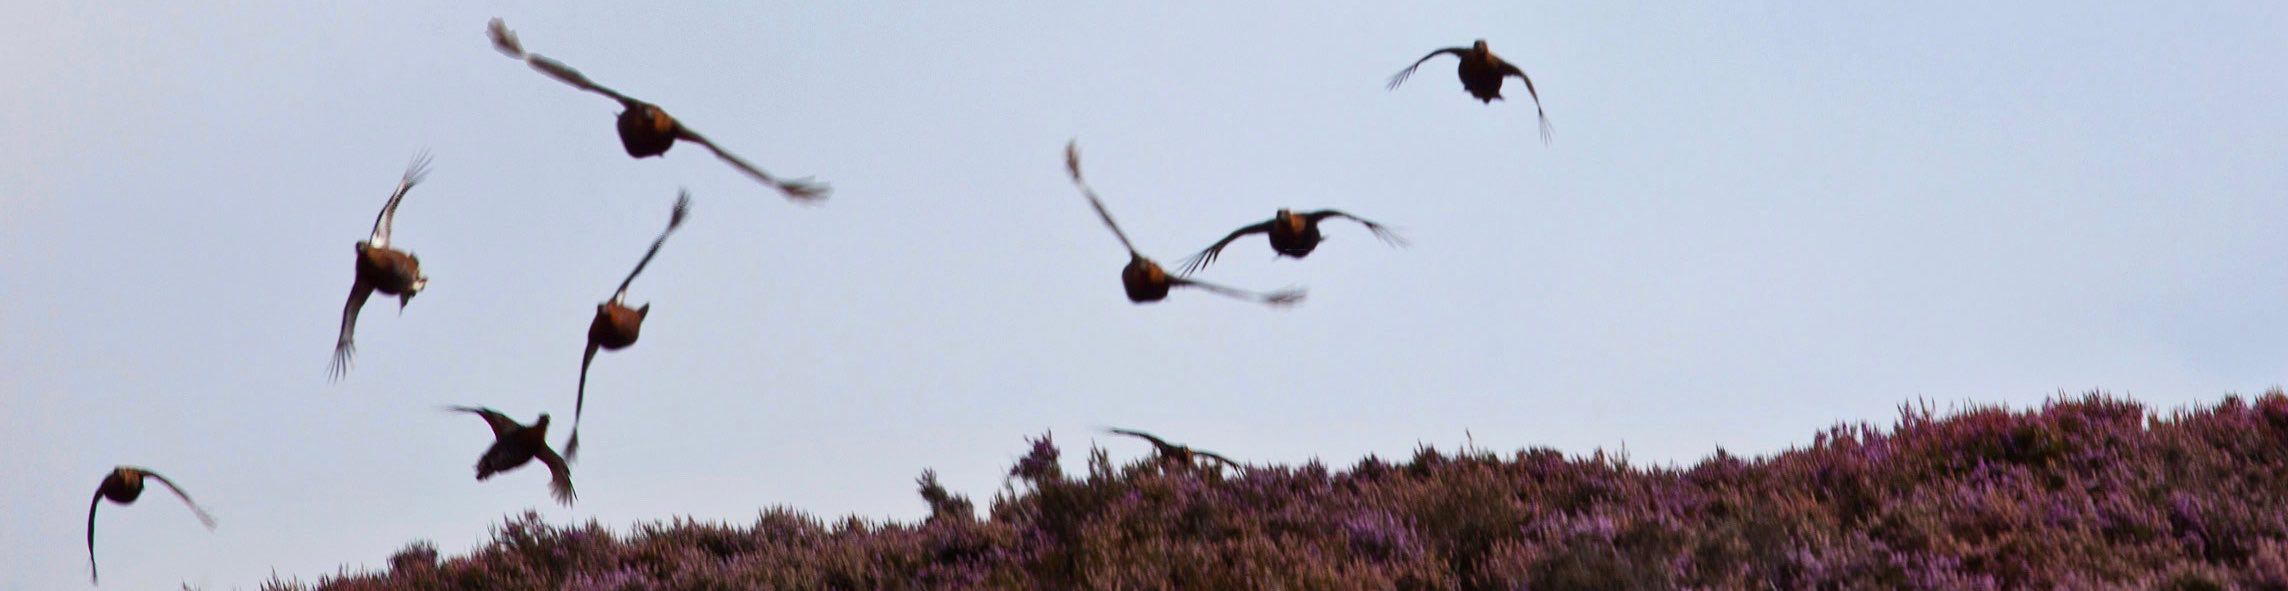 A driven low covey of grouse covey flying over rich biodiversity heather moorland skyline on managed